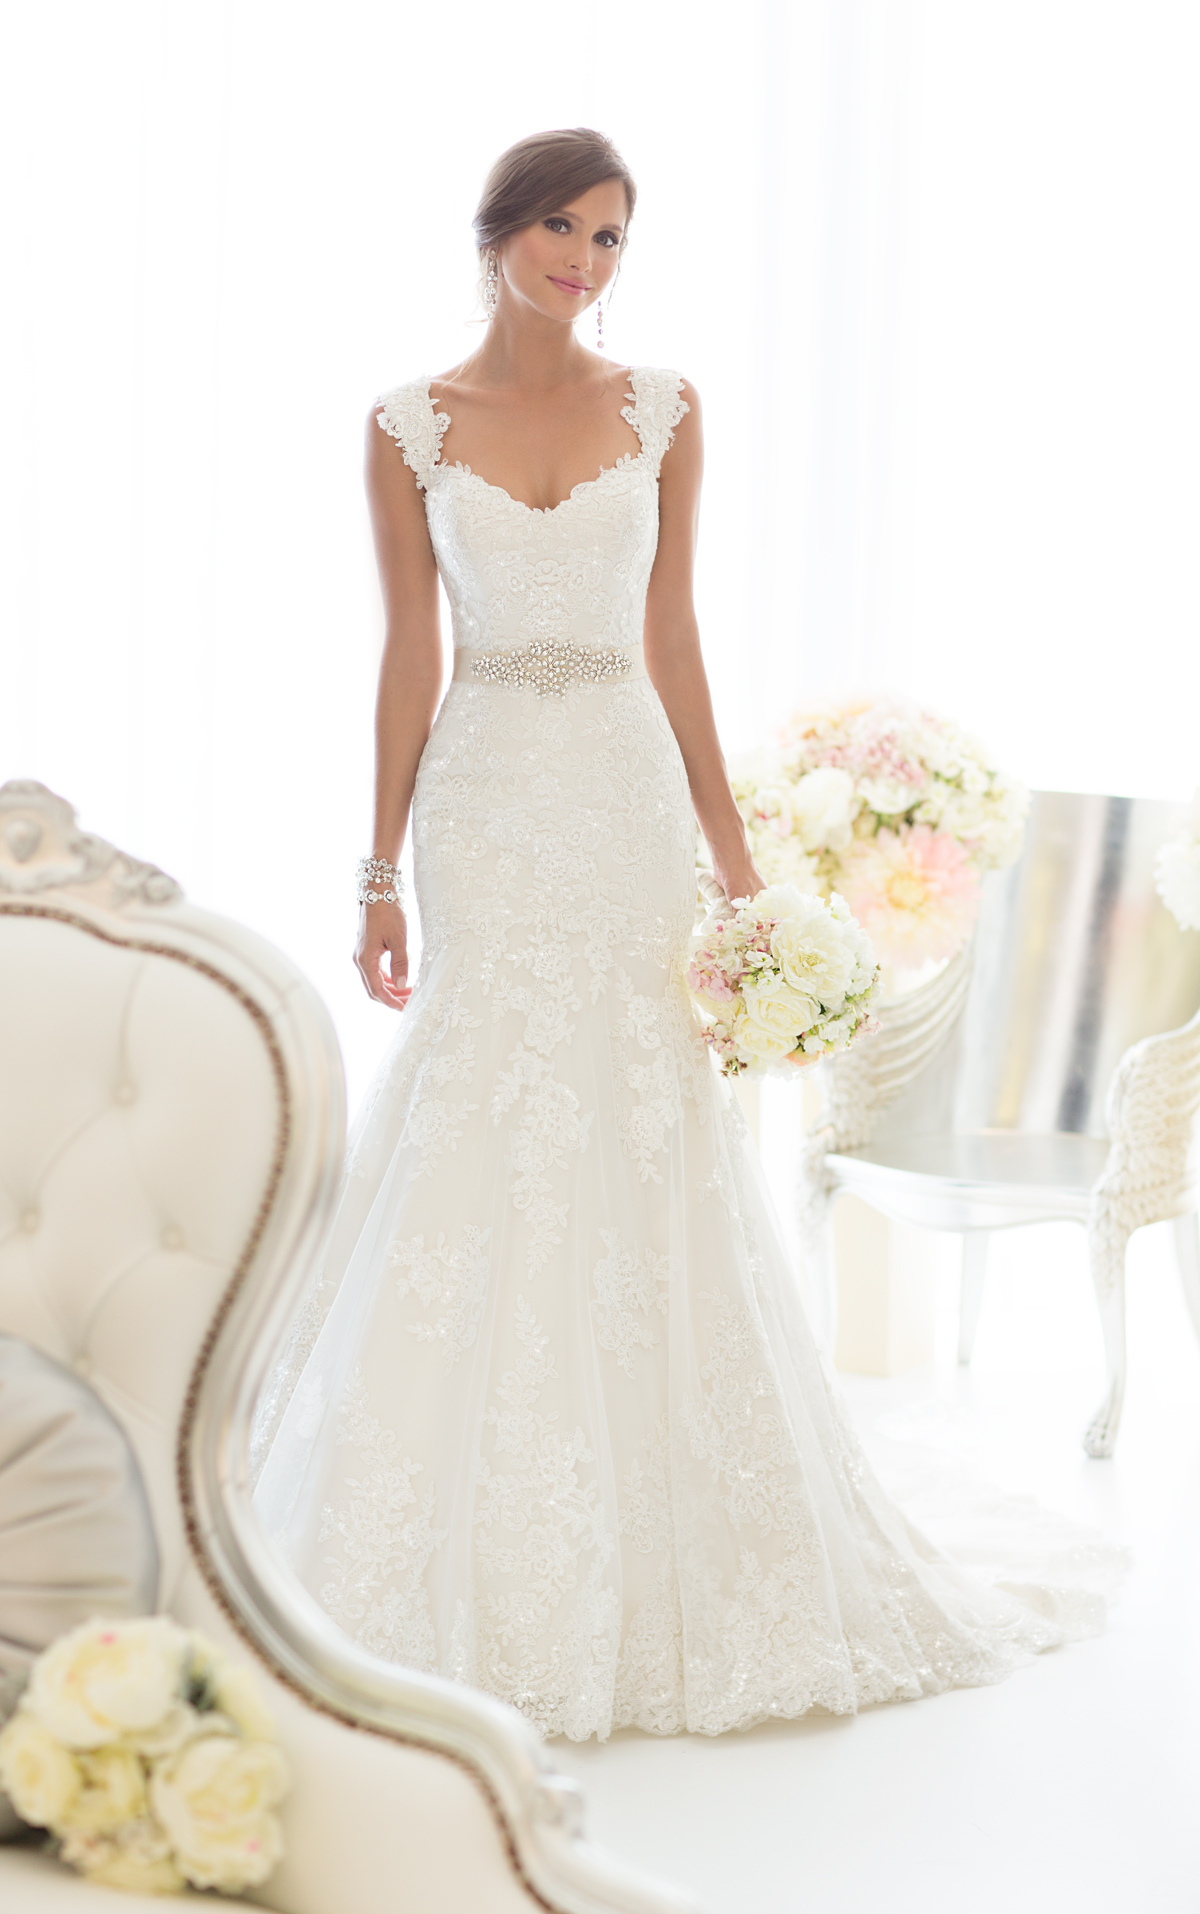 "D1617  — This beautiful all-over Lace fit and flare wedding gown features sparkling Diamante beading throughout and romantic cap sleeves. Comes in ivory or white Lace over a variety of Dolce Satin underdress color choices. Customize your gown to best reflect your sophistication and unique style with the included 1.5"" Grosgrain ribbon sash in your choice of natural, white, orchid, topaz, blossom, bisque or black.  Colors Available: Ivory/Ivory, Ivory/Oyster, White/White"